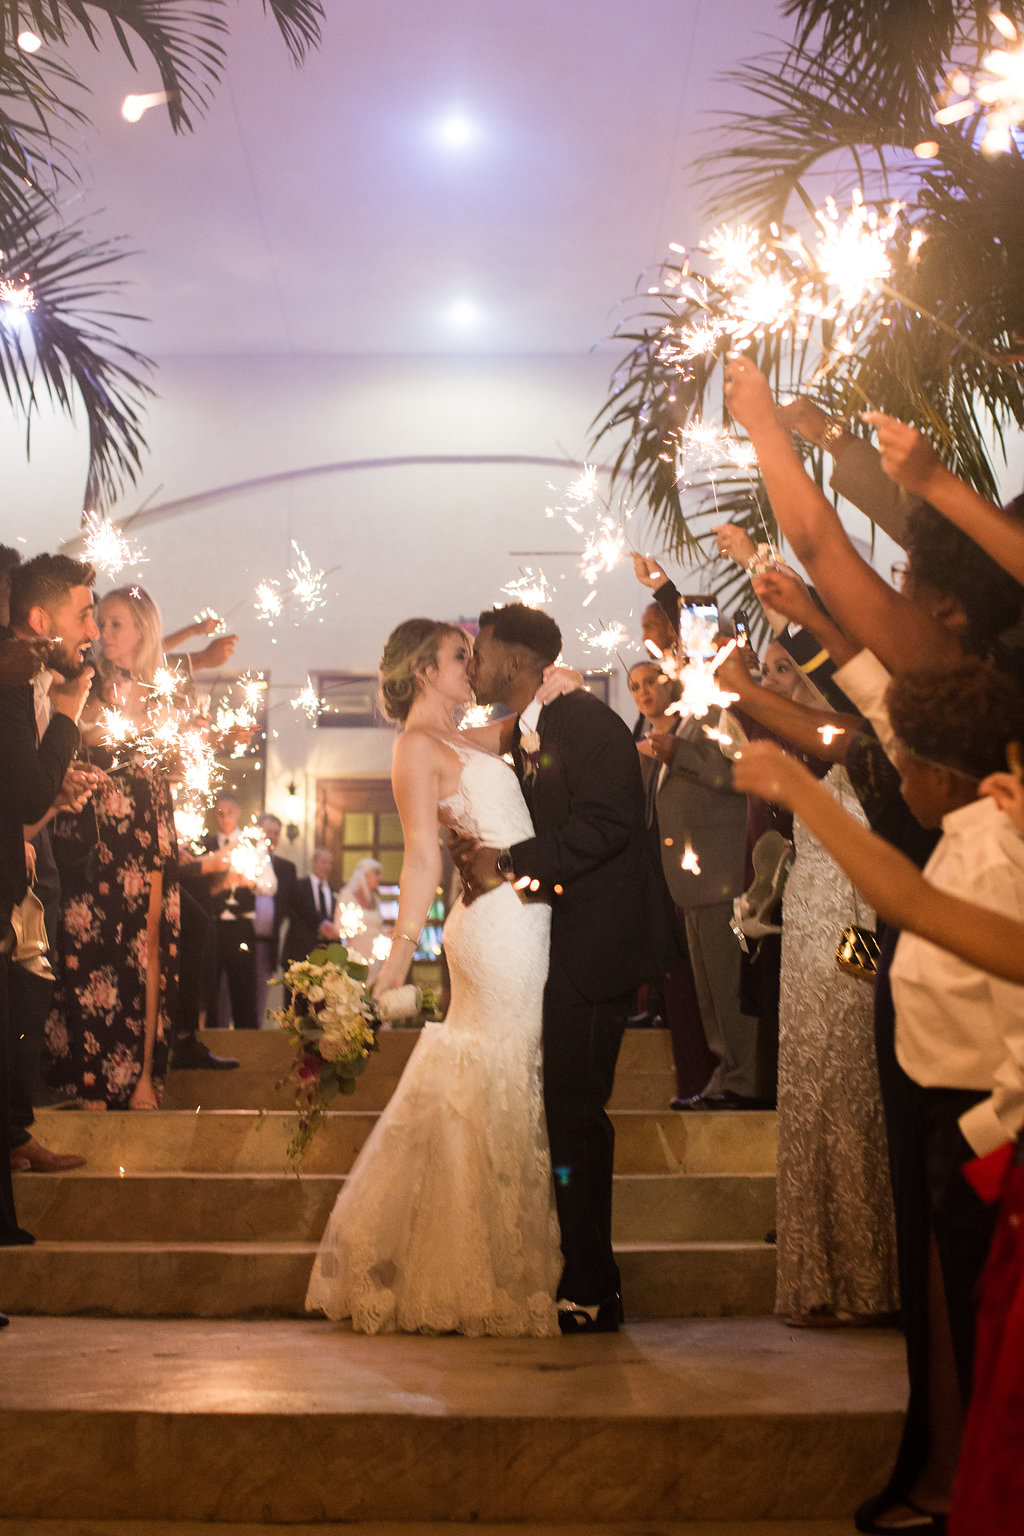 Outdoor Bride and Groom Sparkler Exit Portrait with Wedding Guests, Bride Wearing Spaghetti Strap Lace V-Neck Mermaid Wedding Dress, Updo, White, Deep Purple and Greenery Flower Bouquet, Groom Wearing Black Tuxedo   Clearwater Beach Wedding Venue Feather Sound Country Club